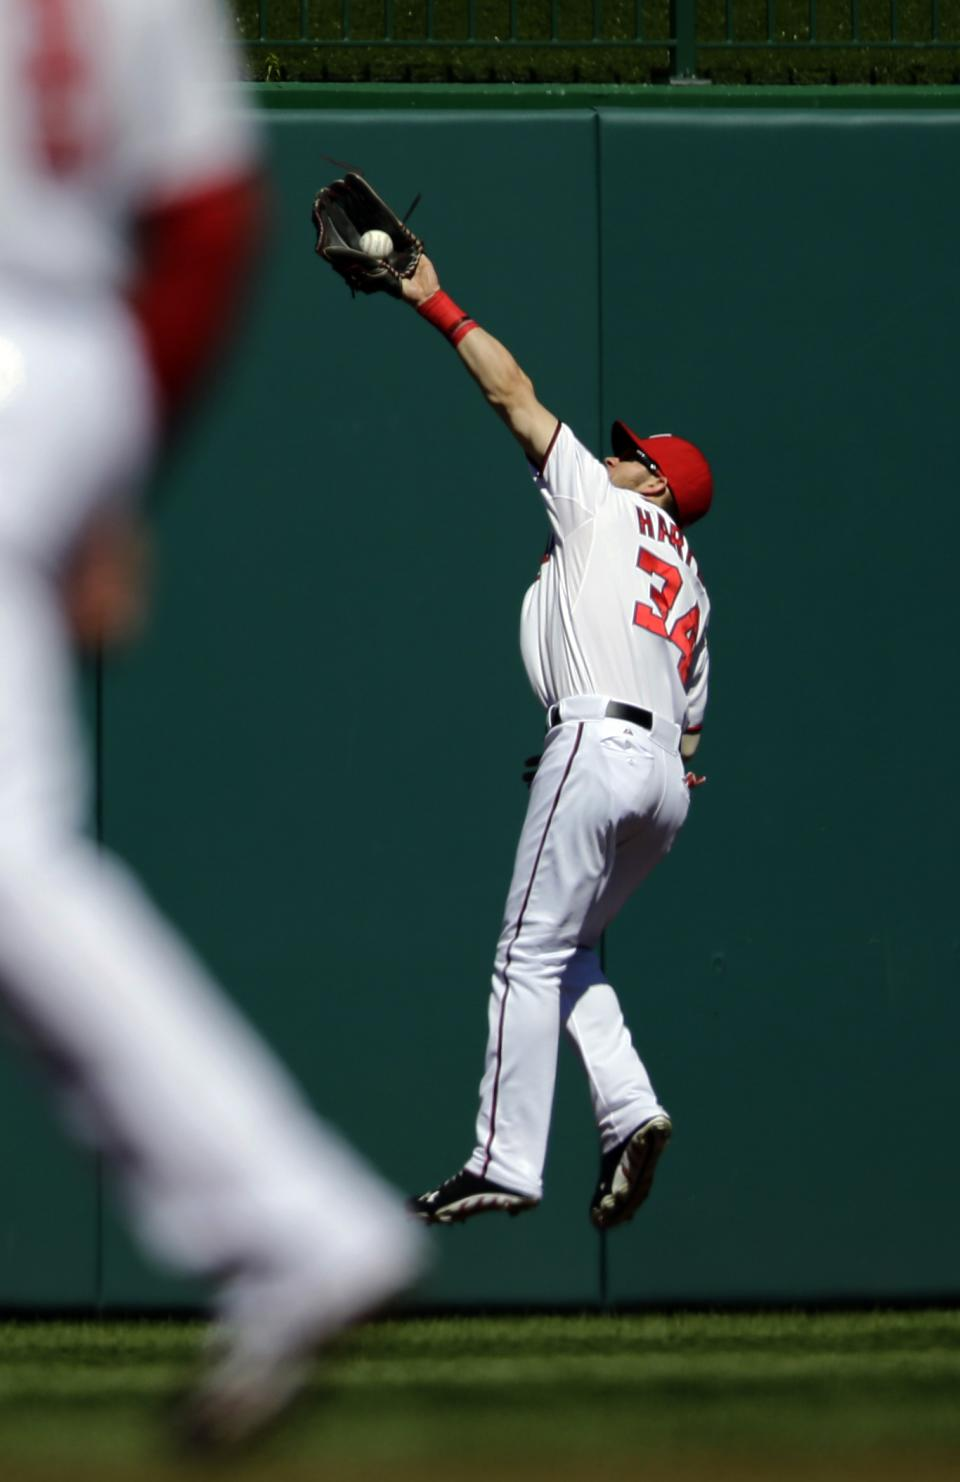 Washington Nationals center fielder Bryce Harper jumps to catch a fly hit by Milwaukee Brewers' Aramis Ramirez during the first inning of a baseball game at Nationals Park, Monday, Sept. 24, 2012, in Washington. (AP Photo/Alex Brandon)